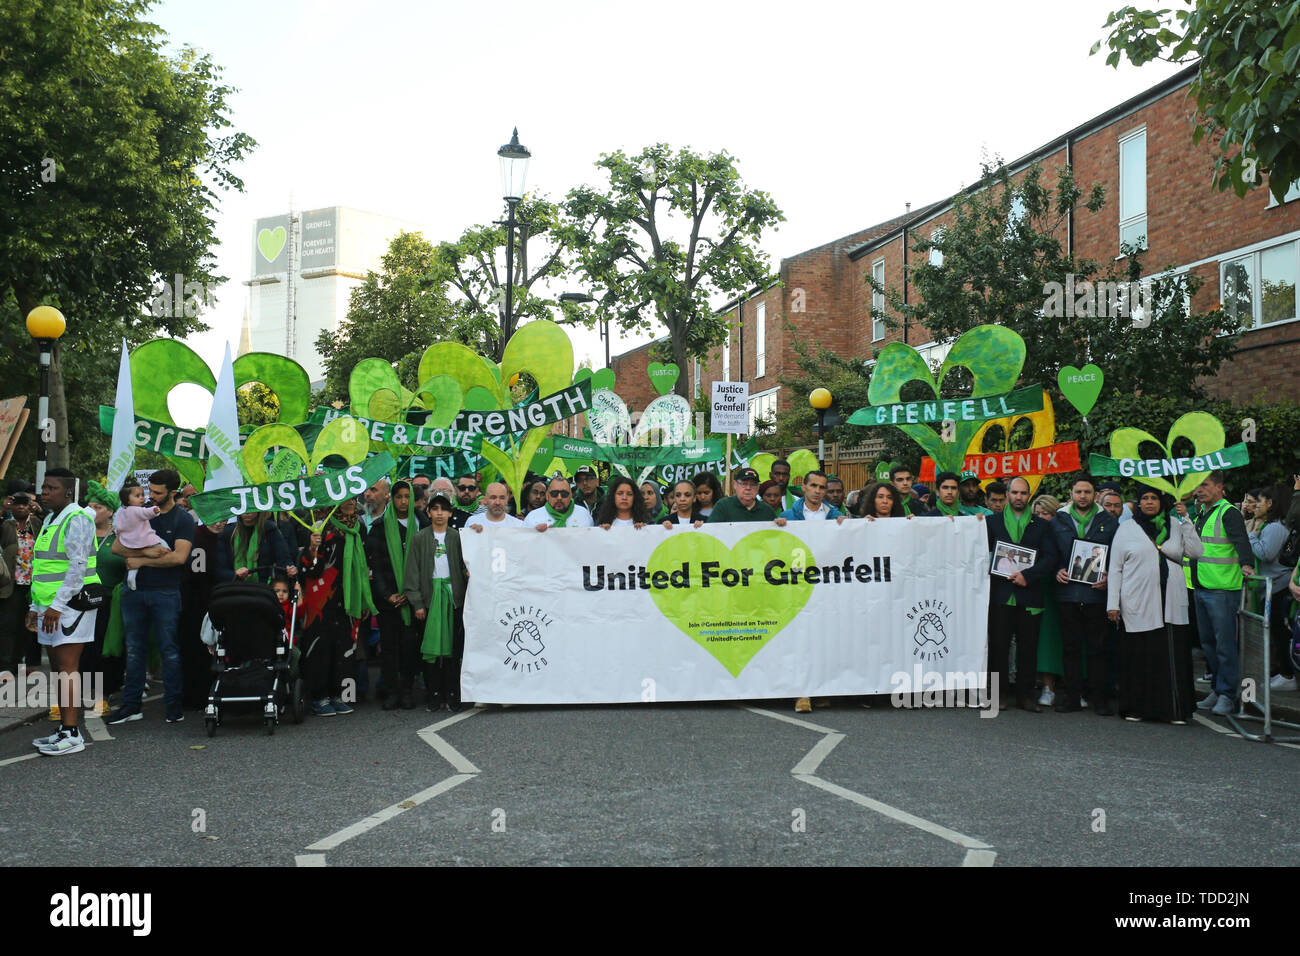 Family and friends of the 72 people who lost their lives in the Grenfell Tower block fire, outside Grenfell Tower, London, during a silent walk to mark the two-year anniversary. - Stock Image